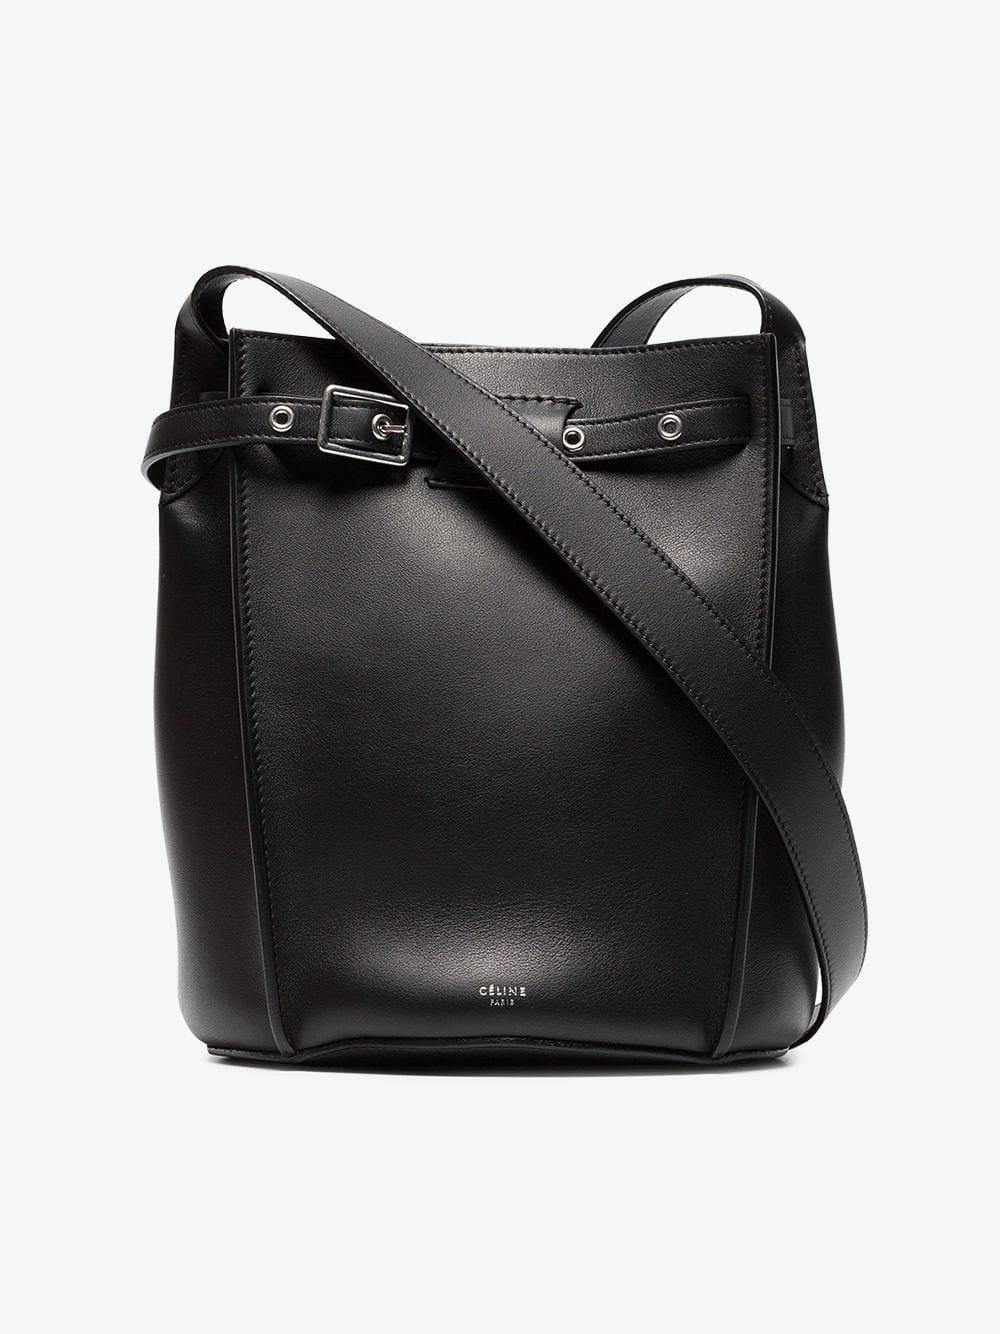 Lyst - Céline Big Bag Bucket in Black 06b3570a806e3